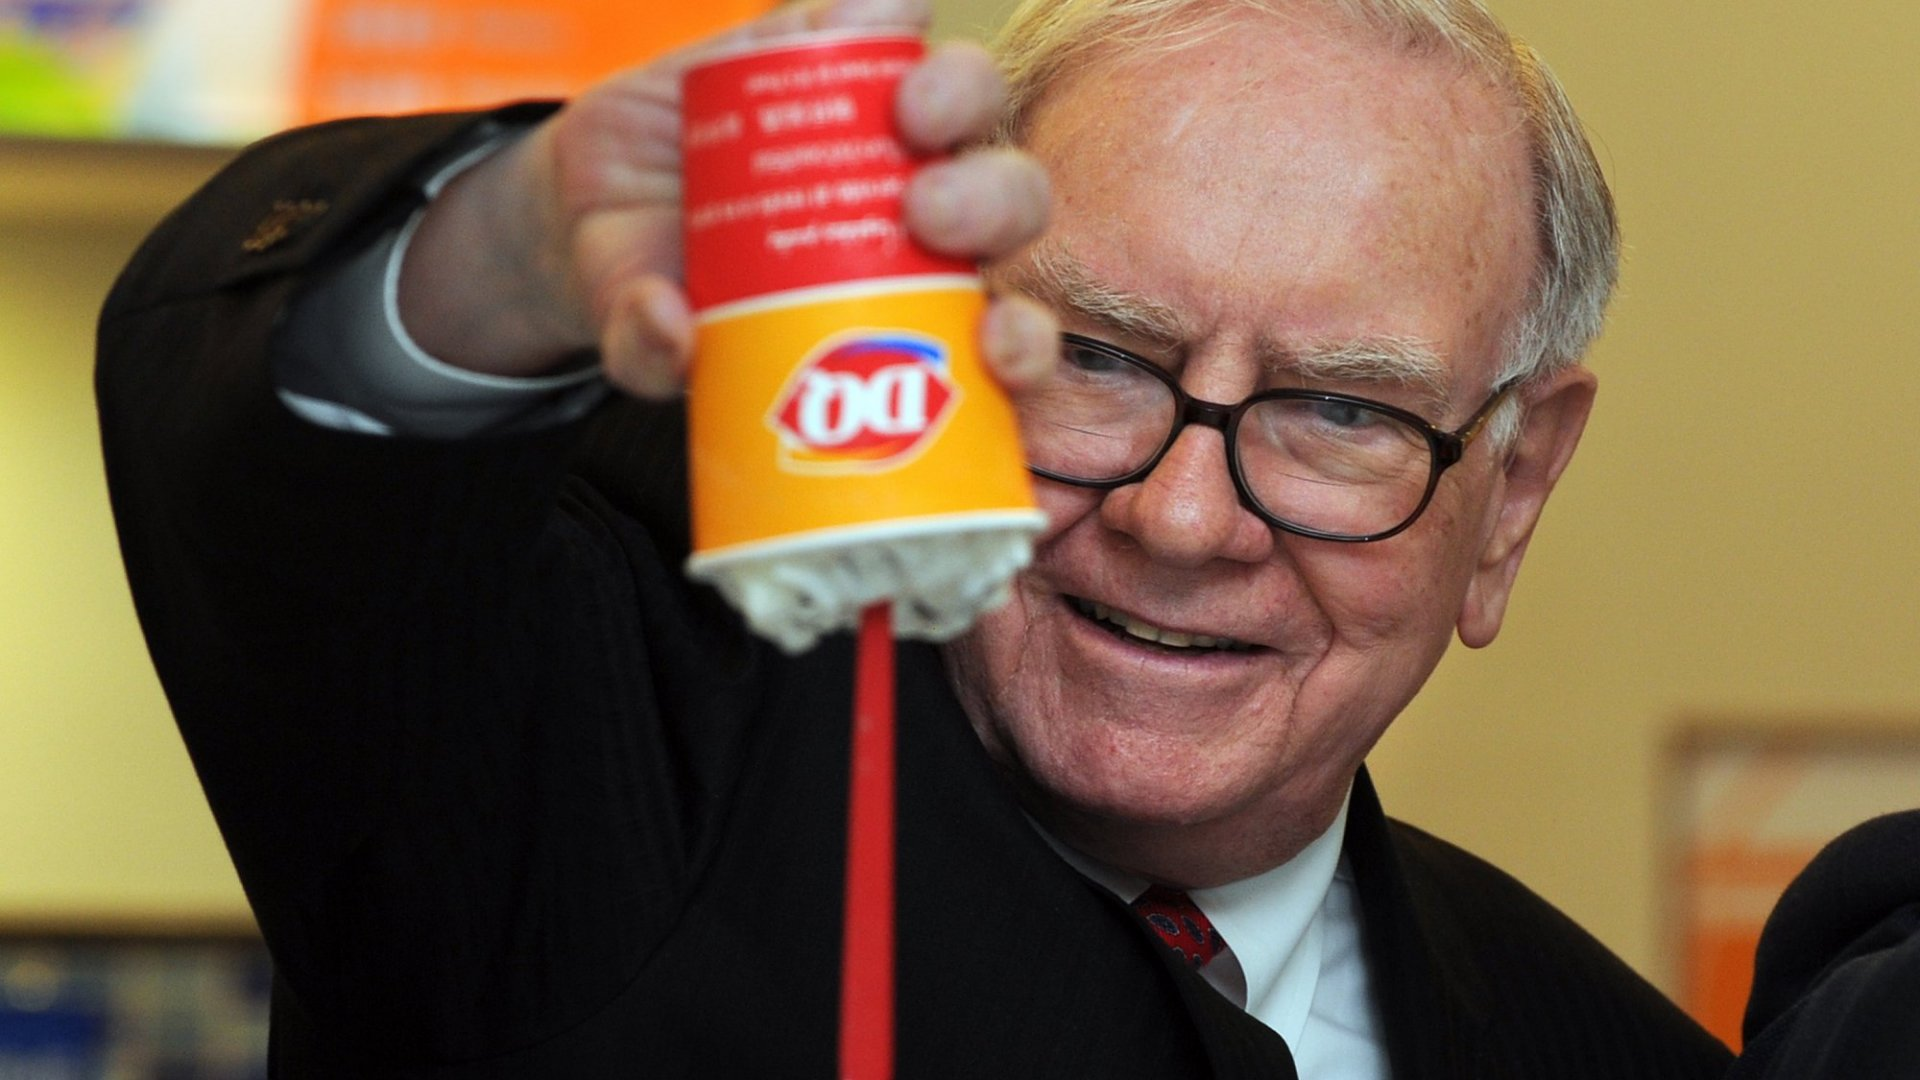 2 Ways You Can Channel Warren Buffett's Genius and Think 'Upside Down' With Your Team